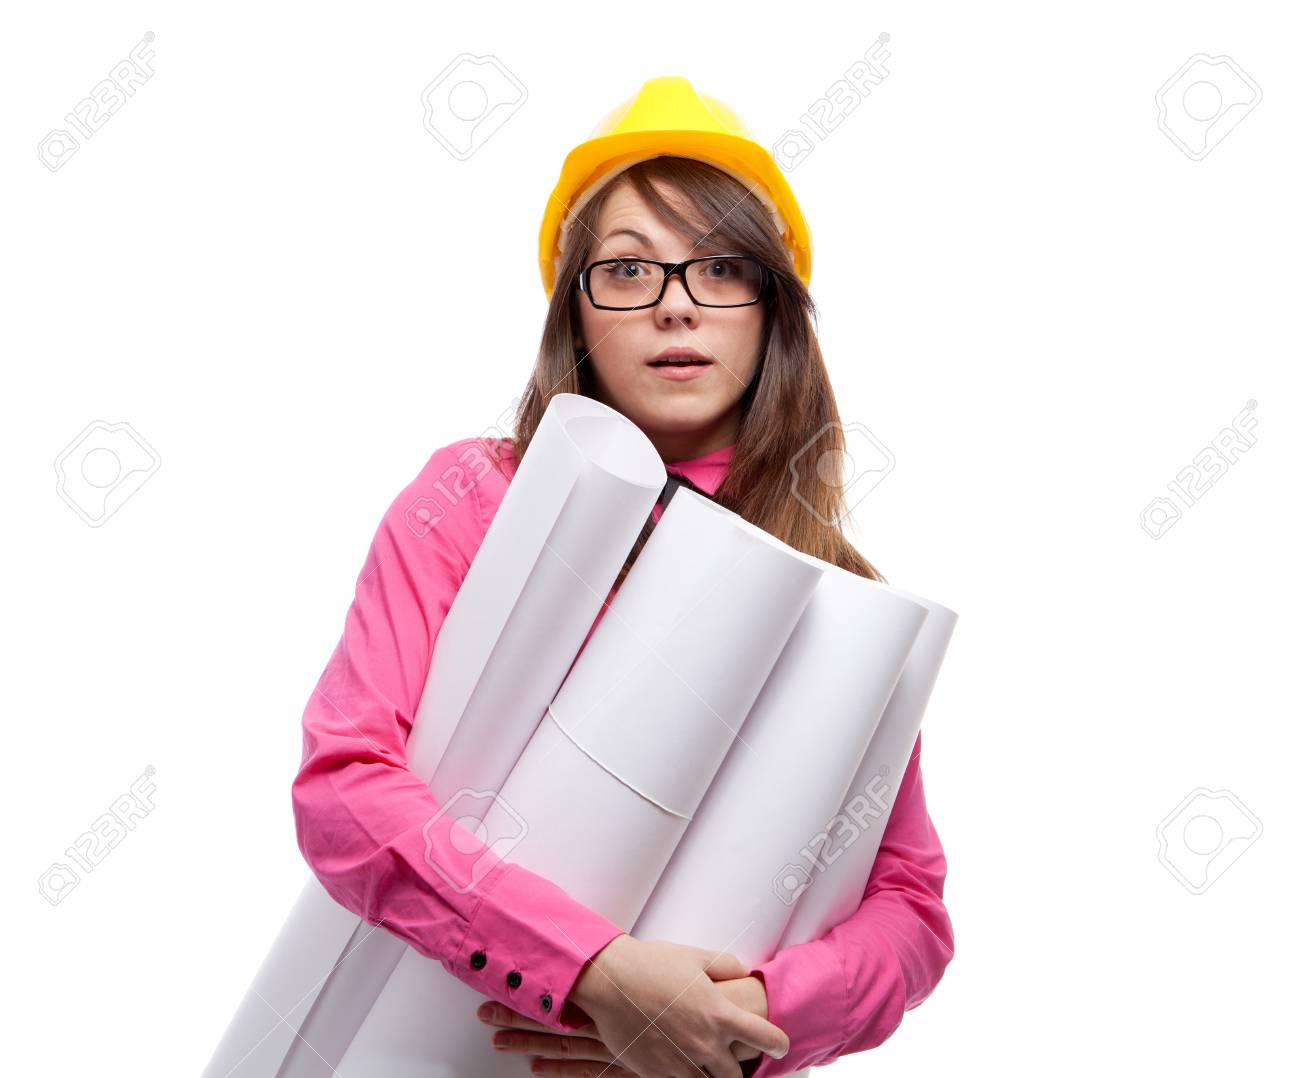 Businesswoman. Isolated over white. Stock Photo - 12526477